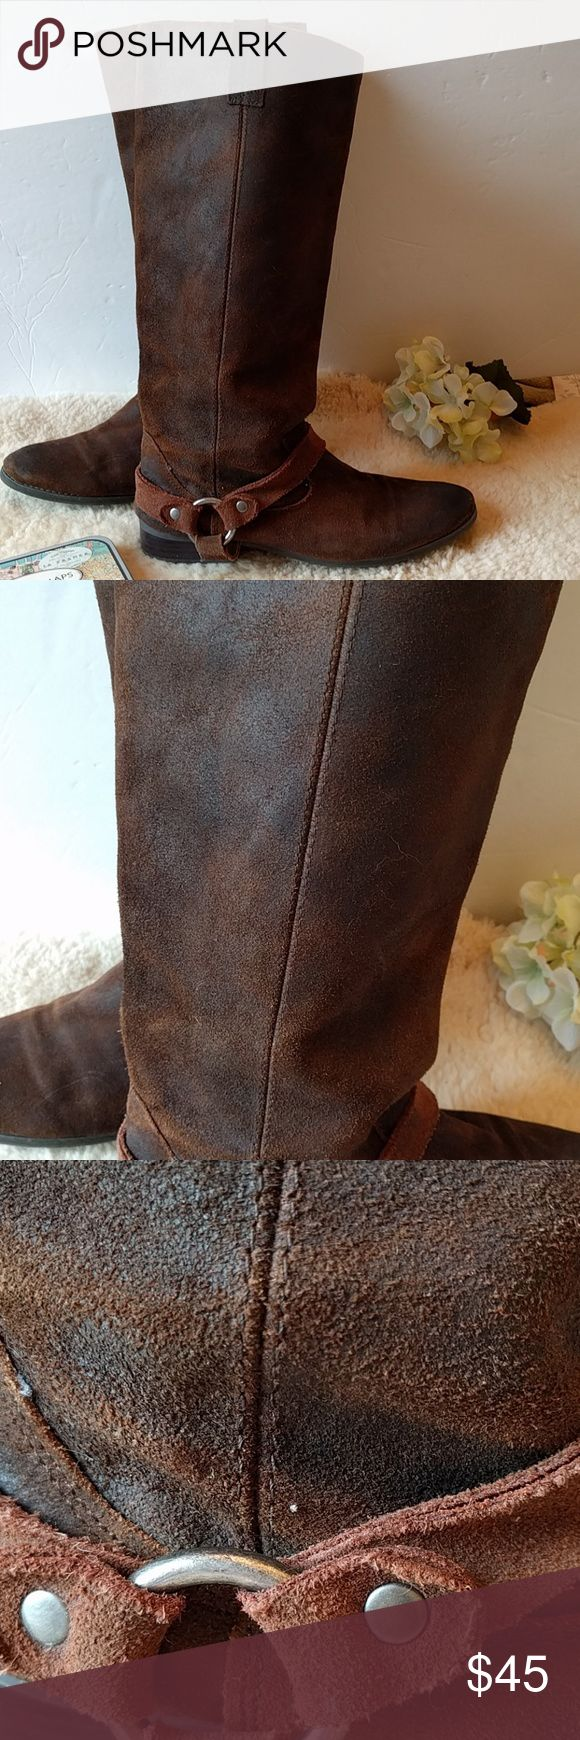 Dolce Vita Distressed raw leather riding boots These are intentionally distressed, but also I did spill something on them see photo. The cool thing about these boots is that as they patina with age, it blends right in. These have been worn and are in good used condition Dolce Vita Shoes Combat & Moto Boots